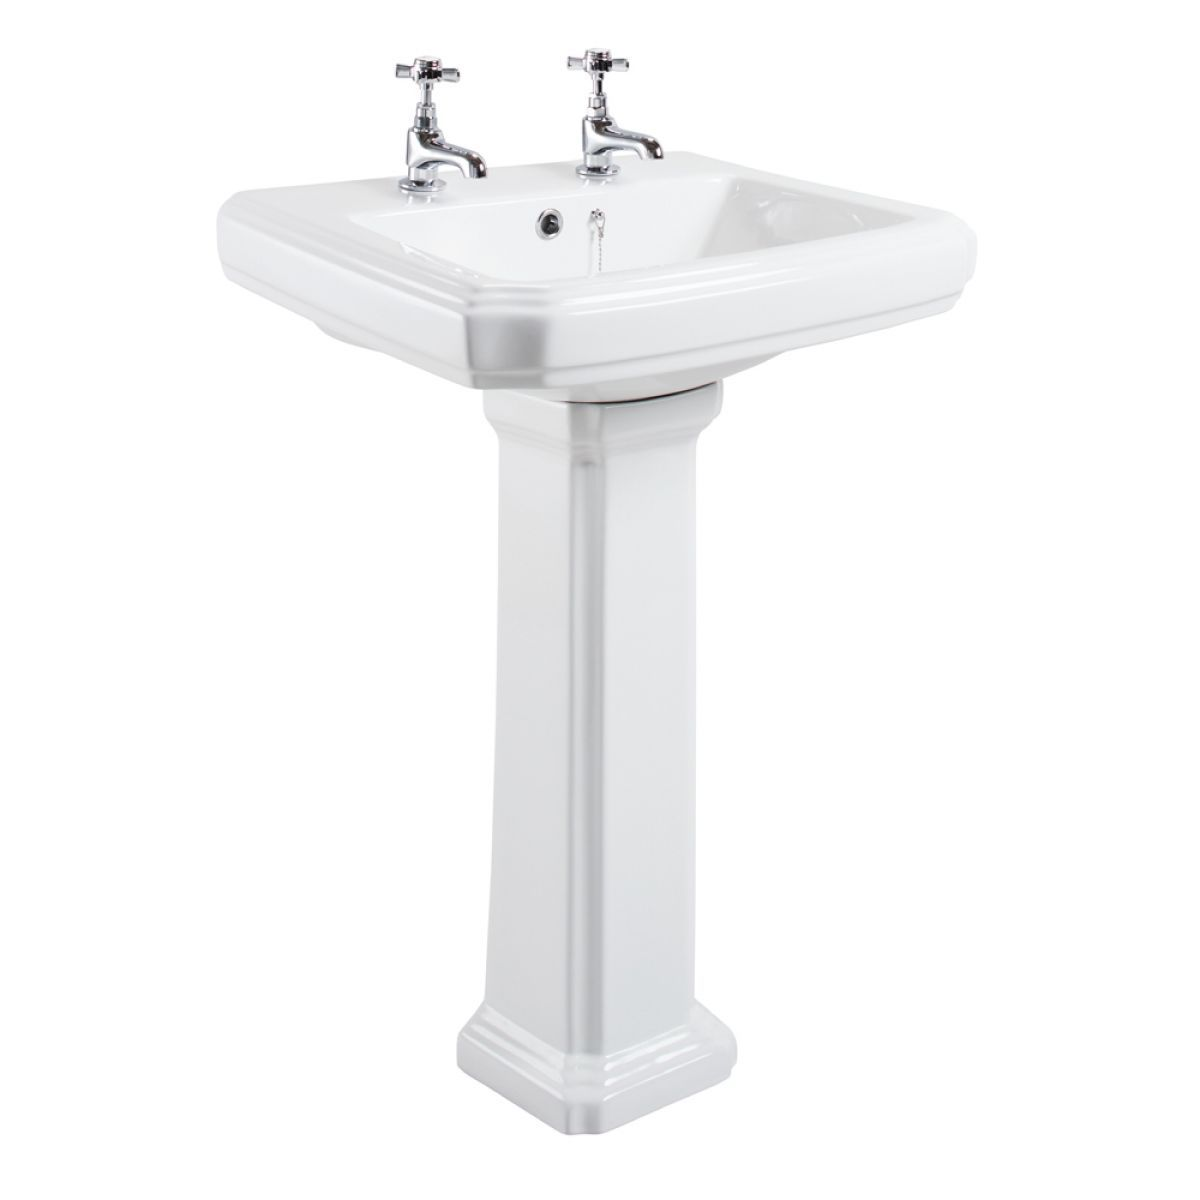 Cassellie Cromford 2 Tap Hole Basin and Pedestal